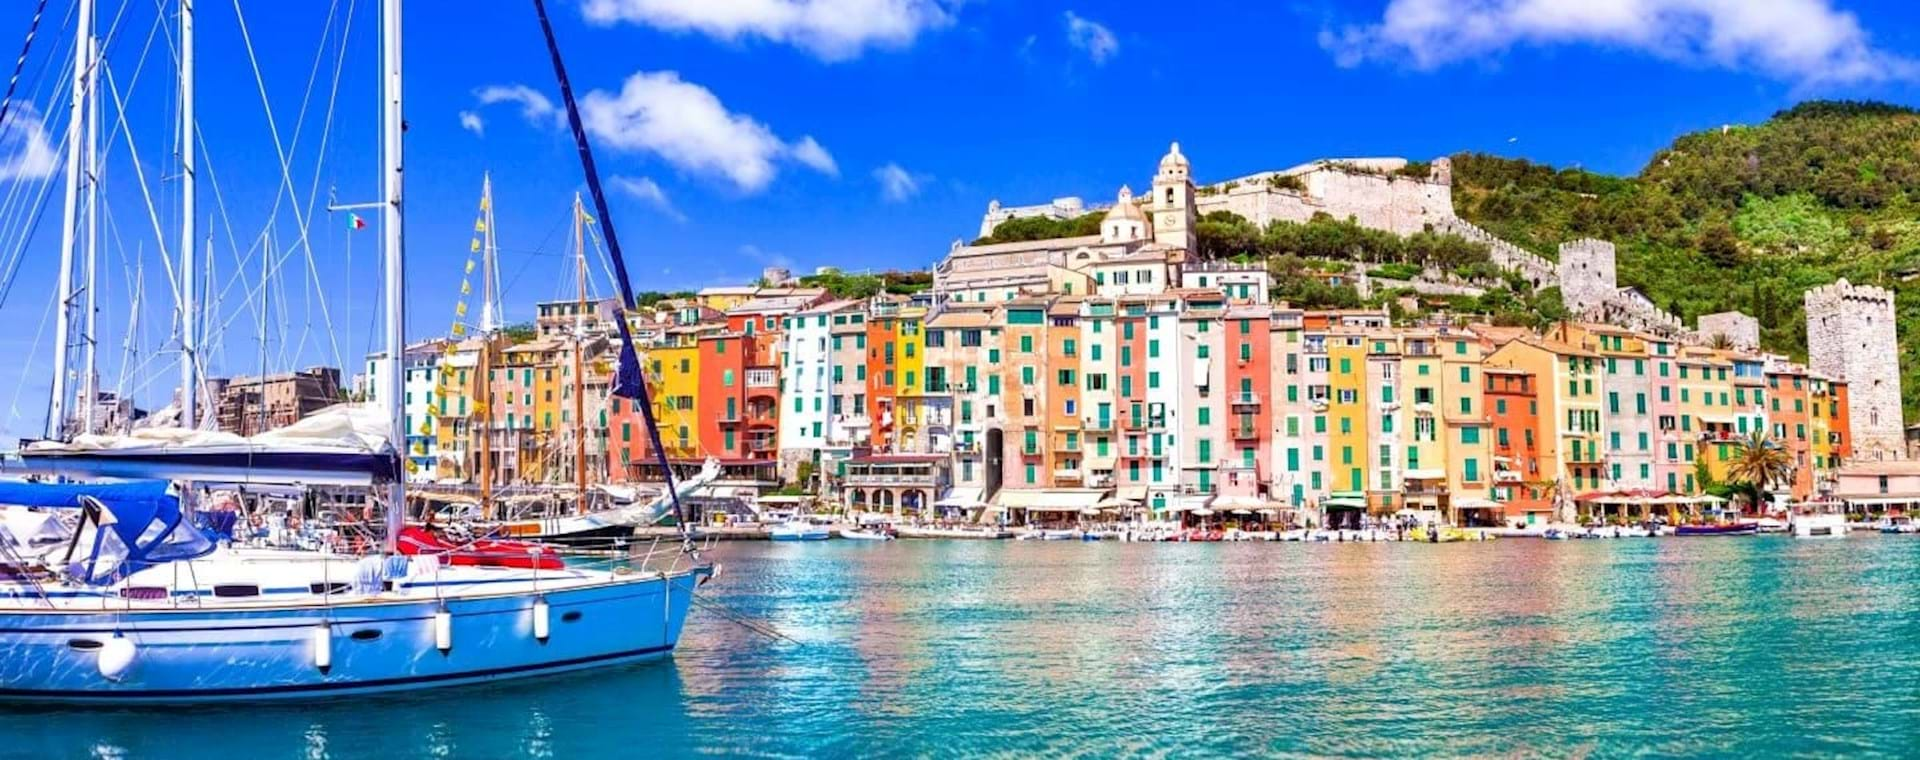 Guided Day Trip: Cinque Terre & Portovenere from Florence